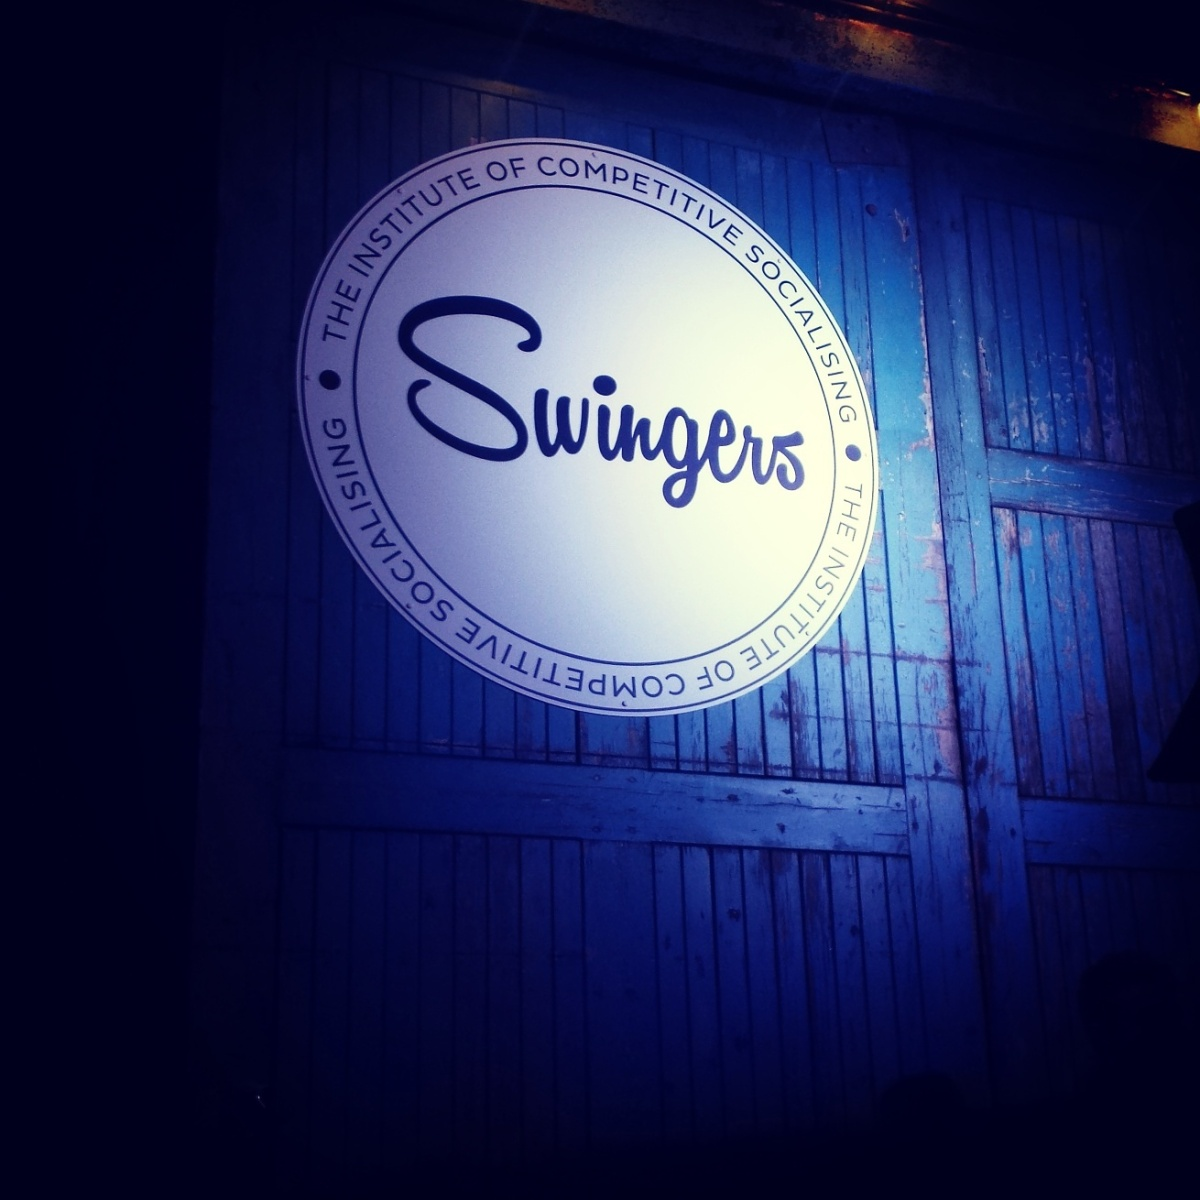 7 Thing I learned from Swingers London - It's really not what you think...